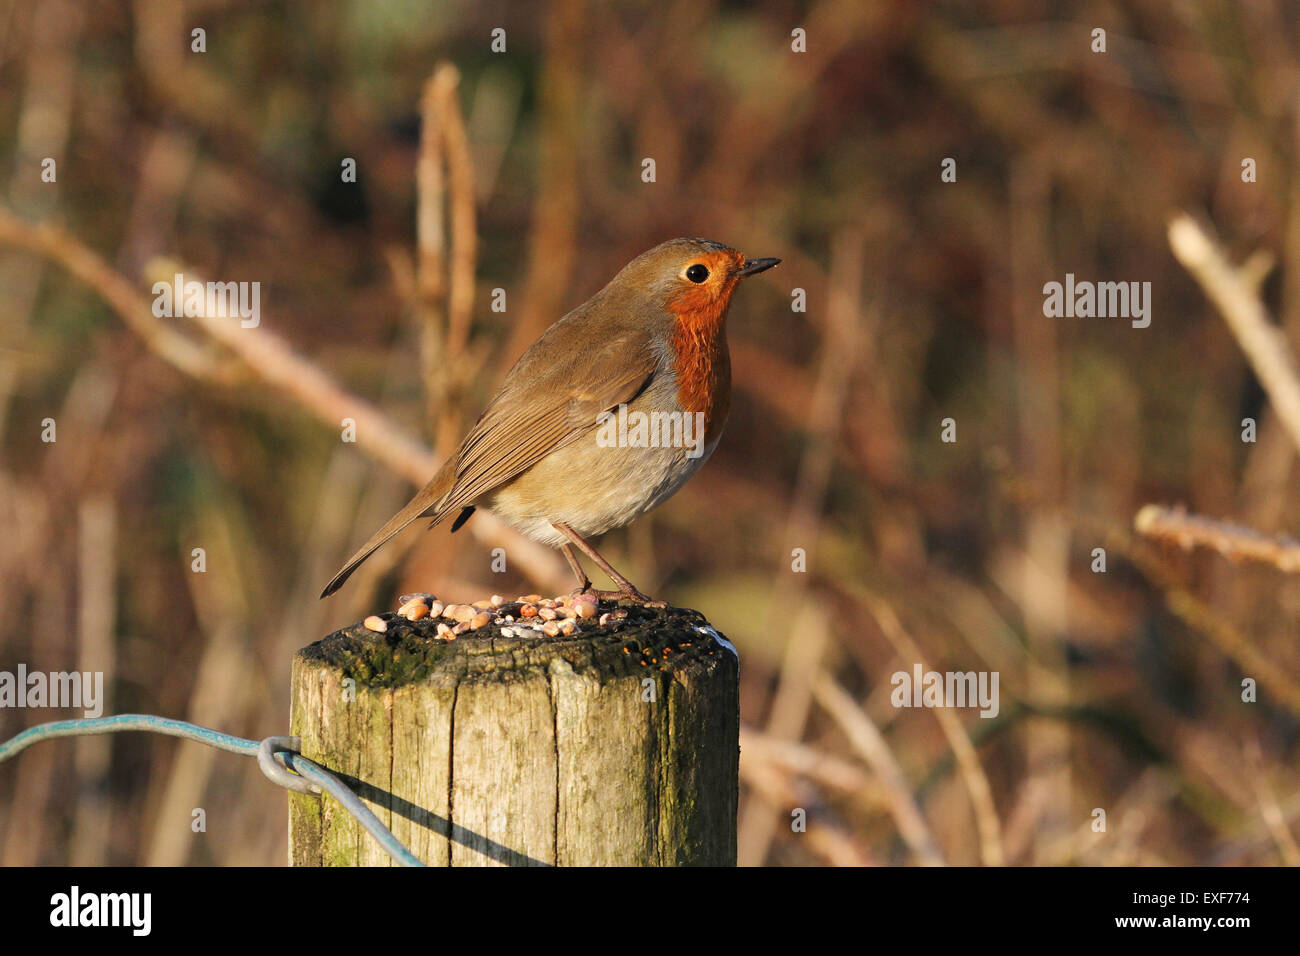 Robin on a fence post - Stock Image